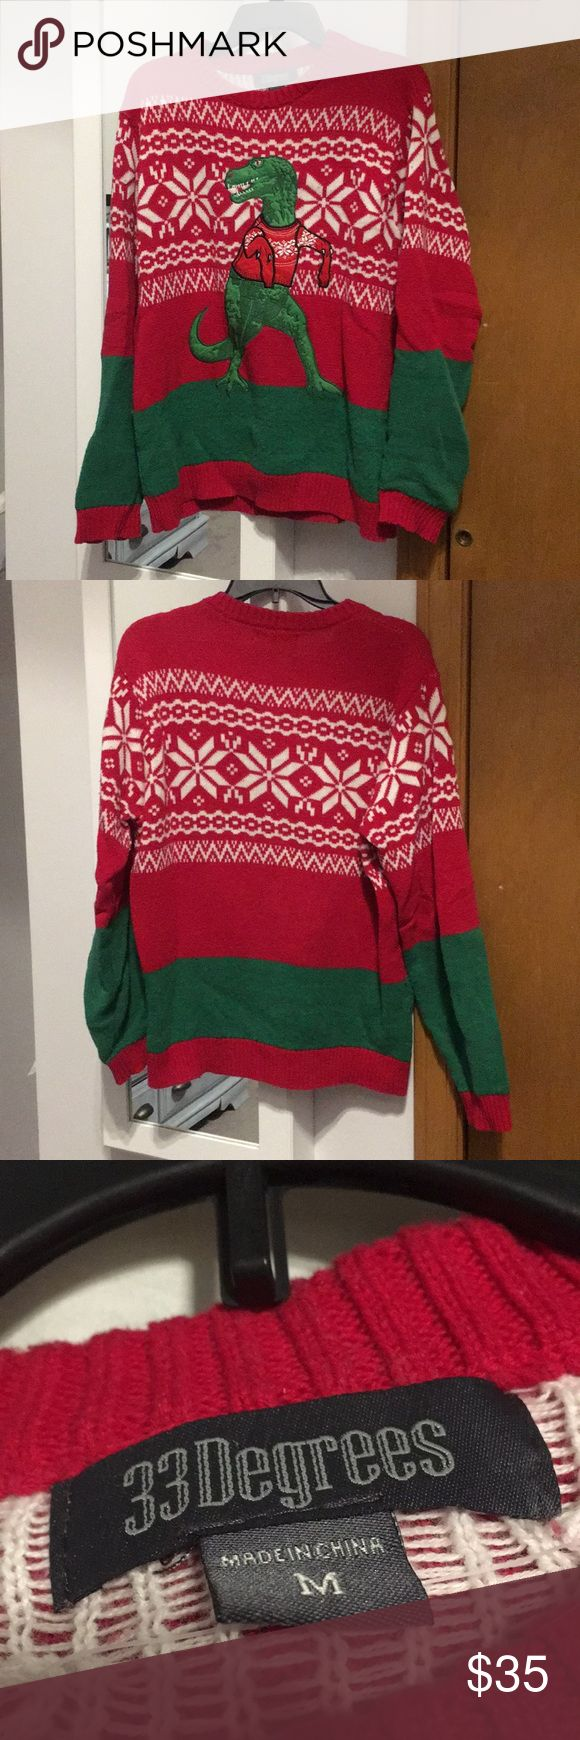 Men Dinosaur Christmas Sweater Men Dinosaur Christmas Sweater  Worn 1x. Excellent condition Size M. Sweaters